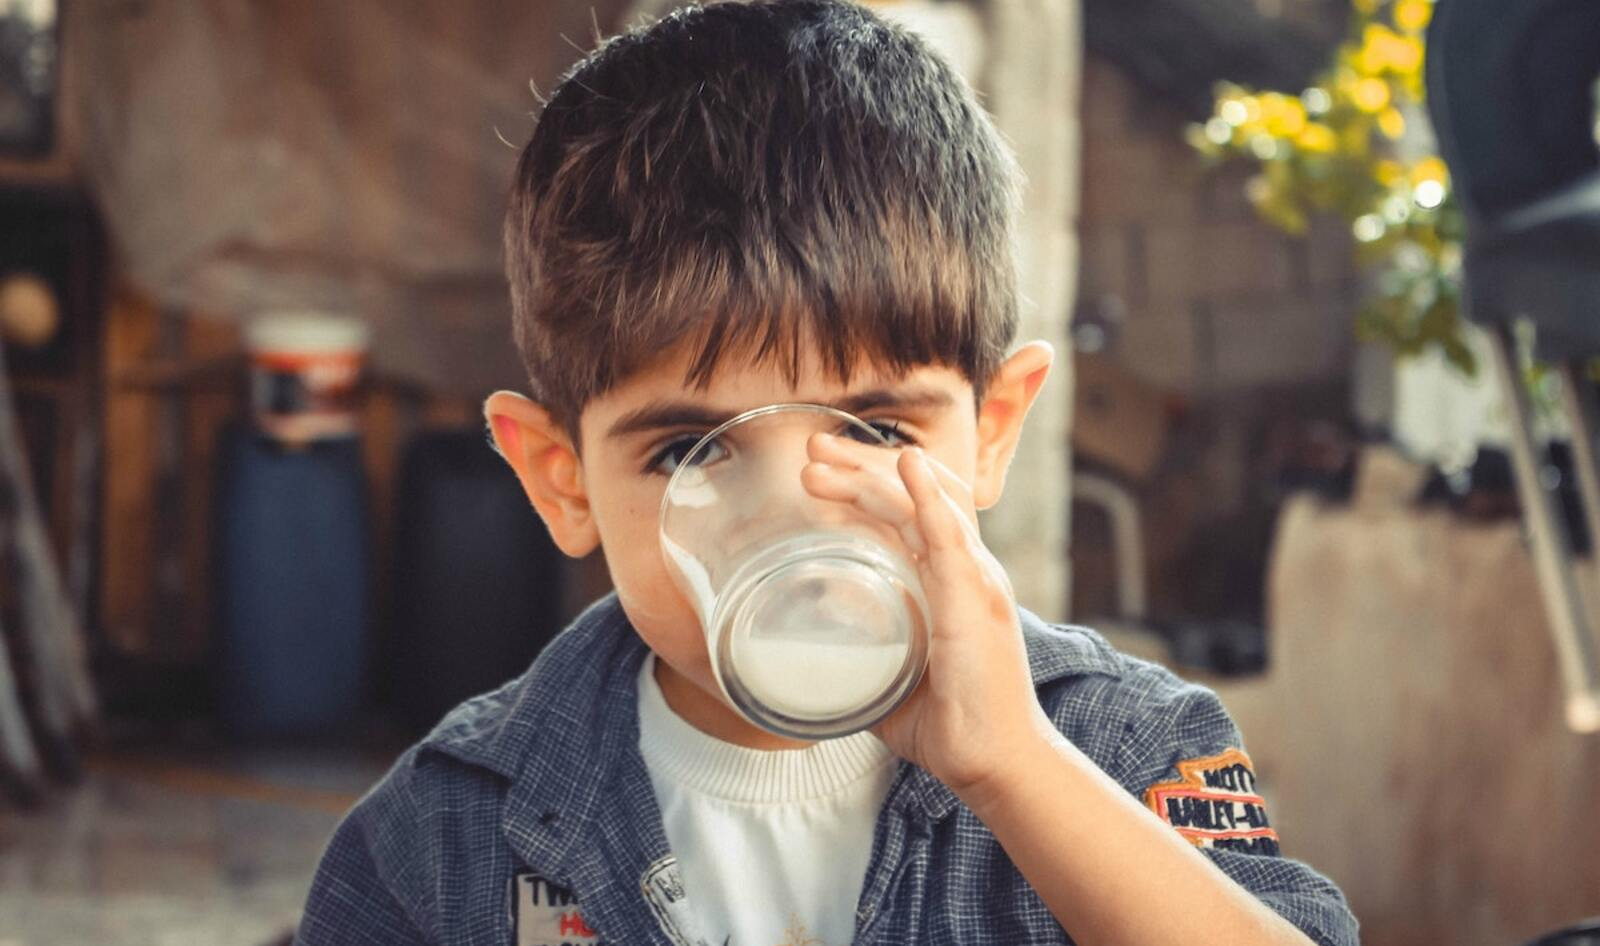 Wait, What? New Child Beverage Recommendations Put Plant Milk and Soda in the Same Category